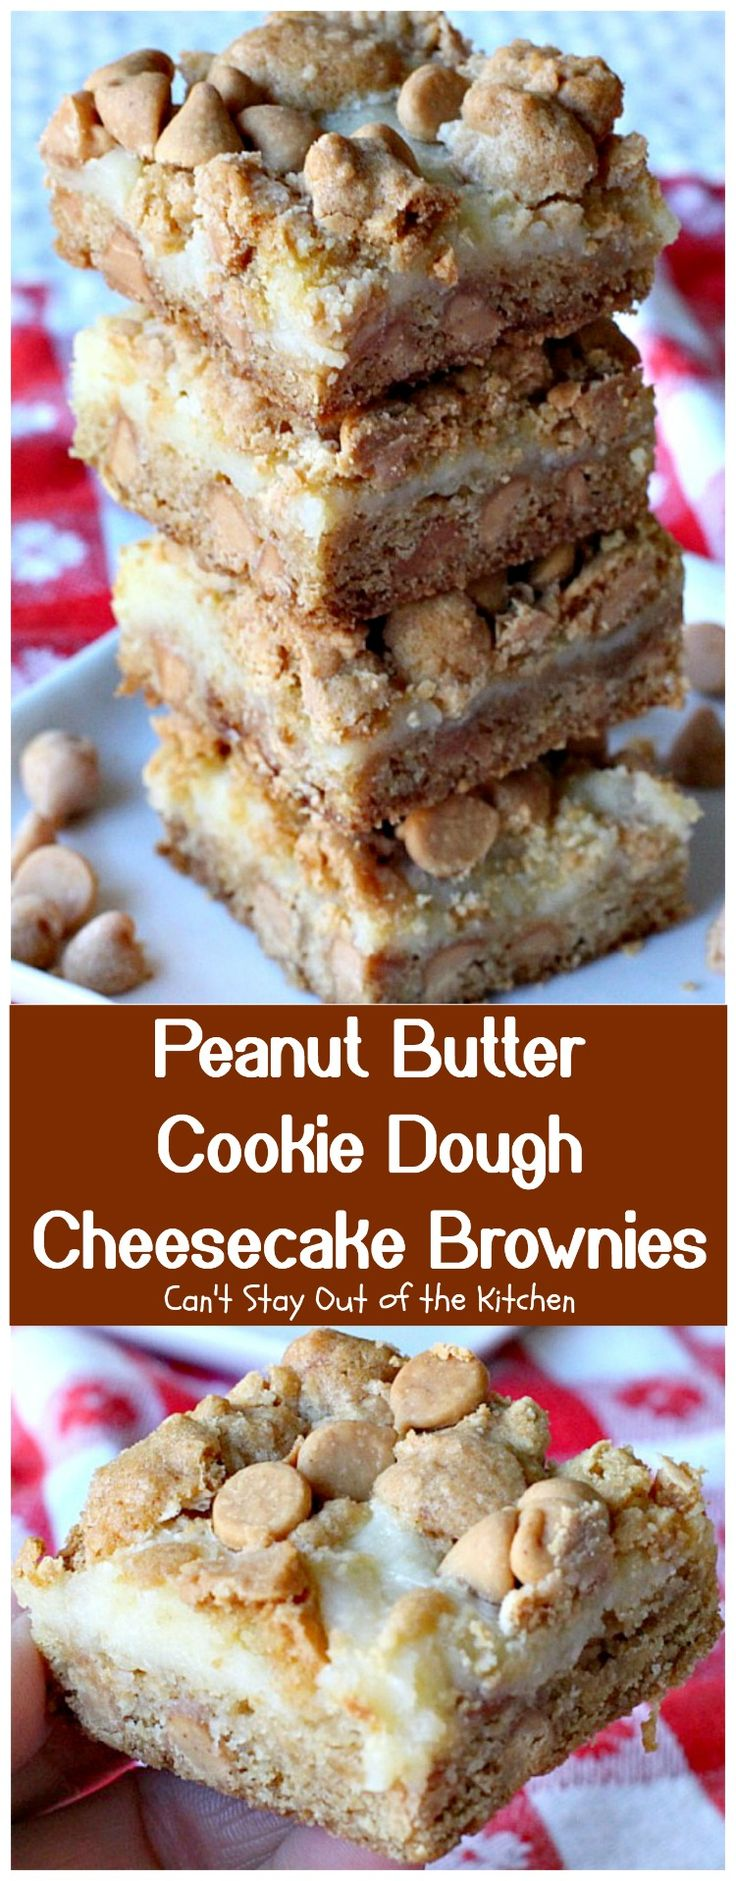 Peanut Butter Cookie Dough Cheesecake Brownies are made with peanut butter cookie dough and a luscious cheesecake layer. Great for tailgating parties!